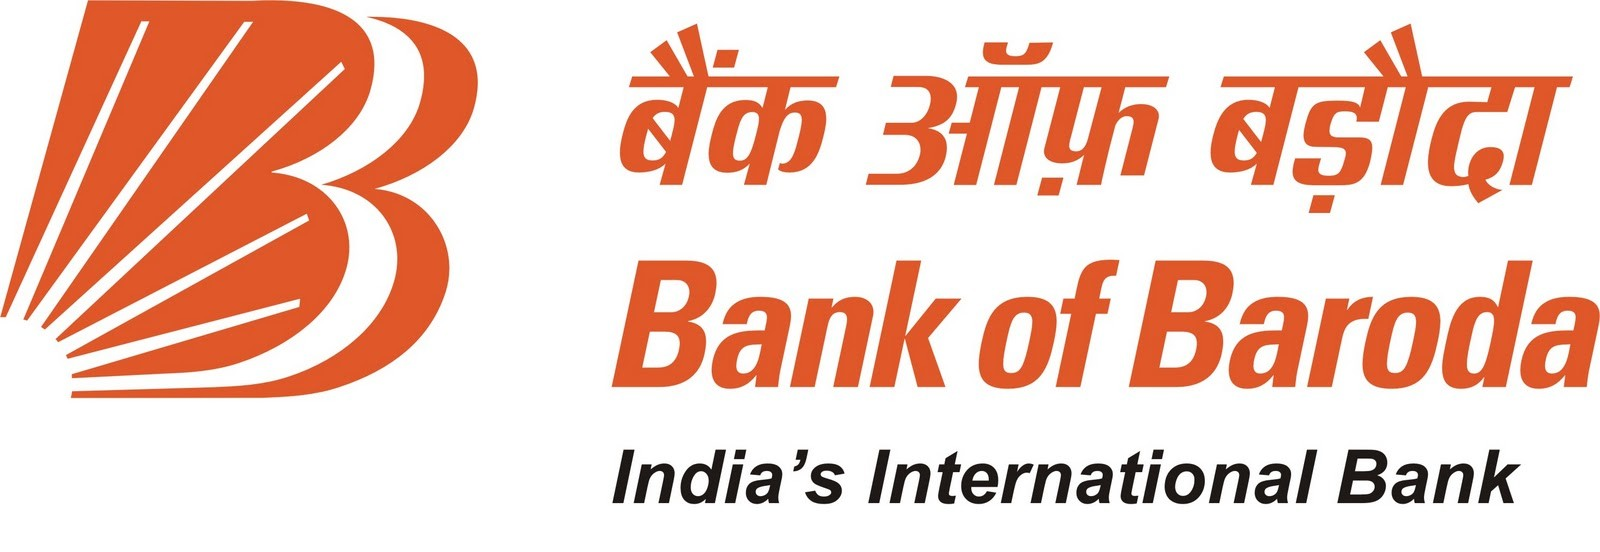 Bank Of Baroda 5000 Jobs 2020